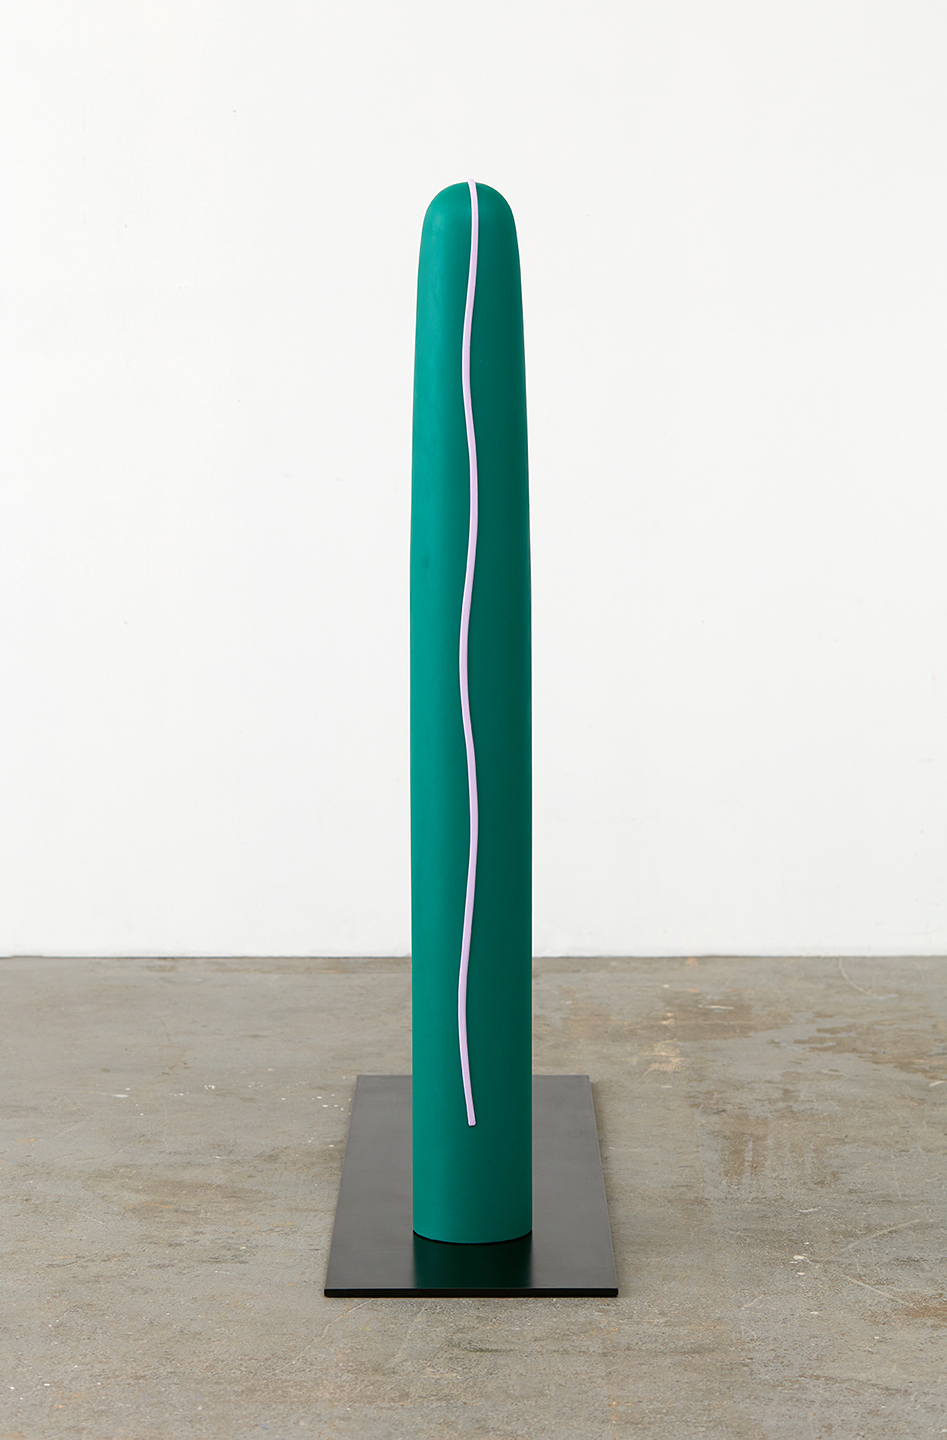 "Lisa Williamson Climber, Elegans 2015 Acrylic on wood and steel base with black acid and wax finish 52 ⅛"" x 6"" x 6""; Base 48"" x 14"" x ⅜"" LW173"